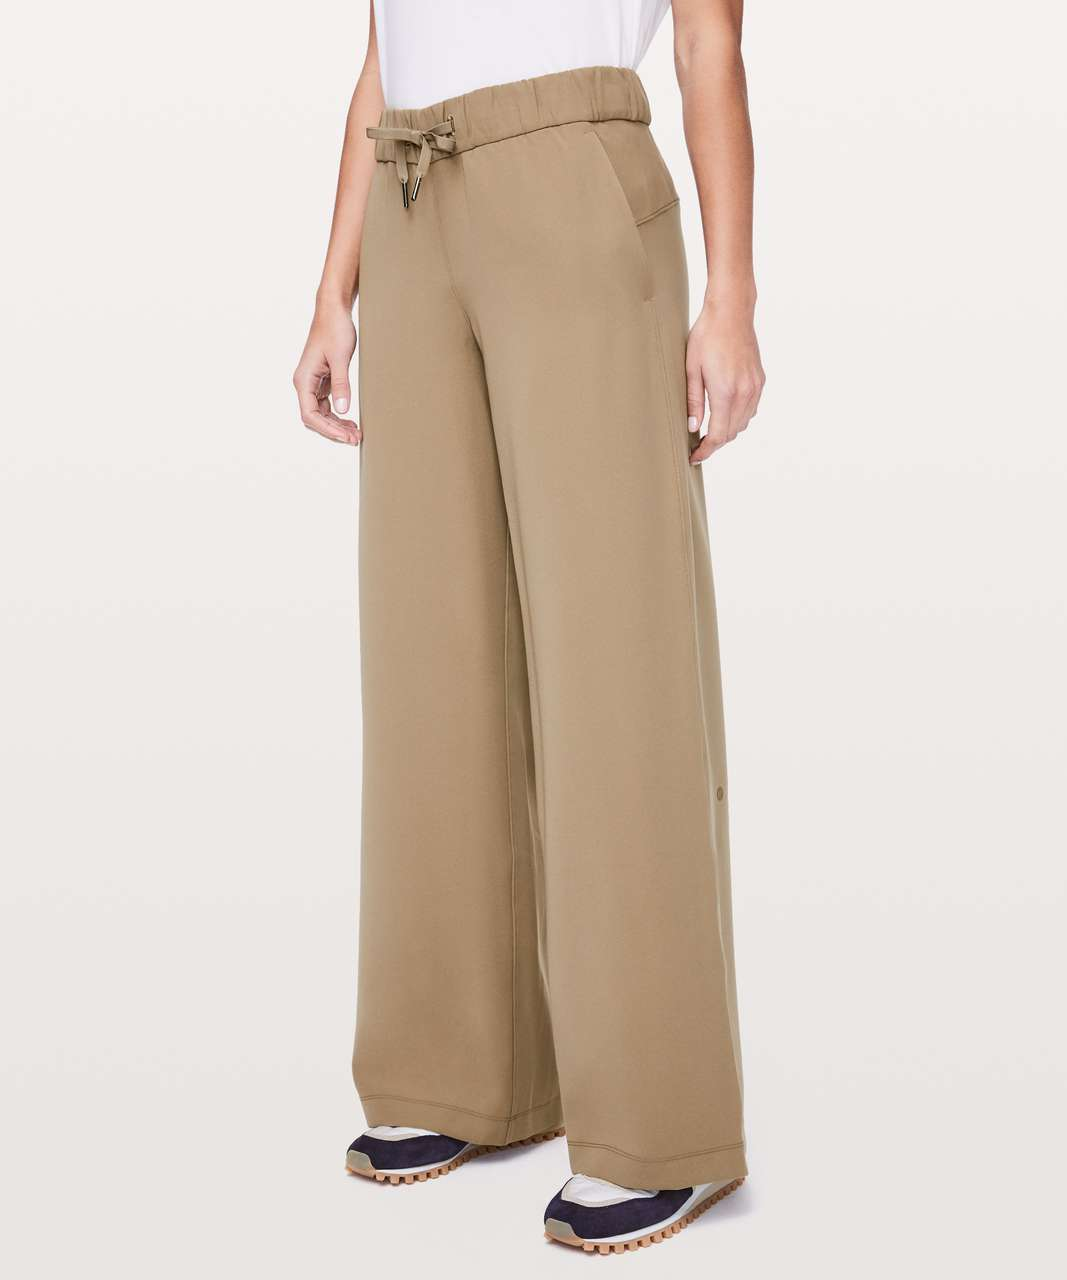 8846ff1607 Lululemon On The Fly Pant *Wide Leg Woven 31.5